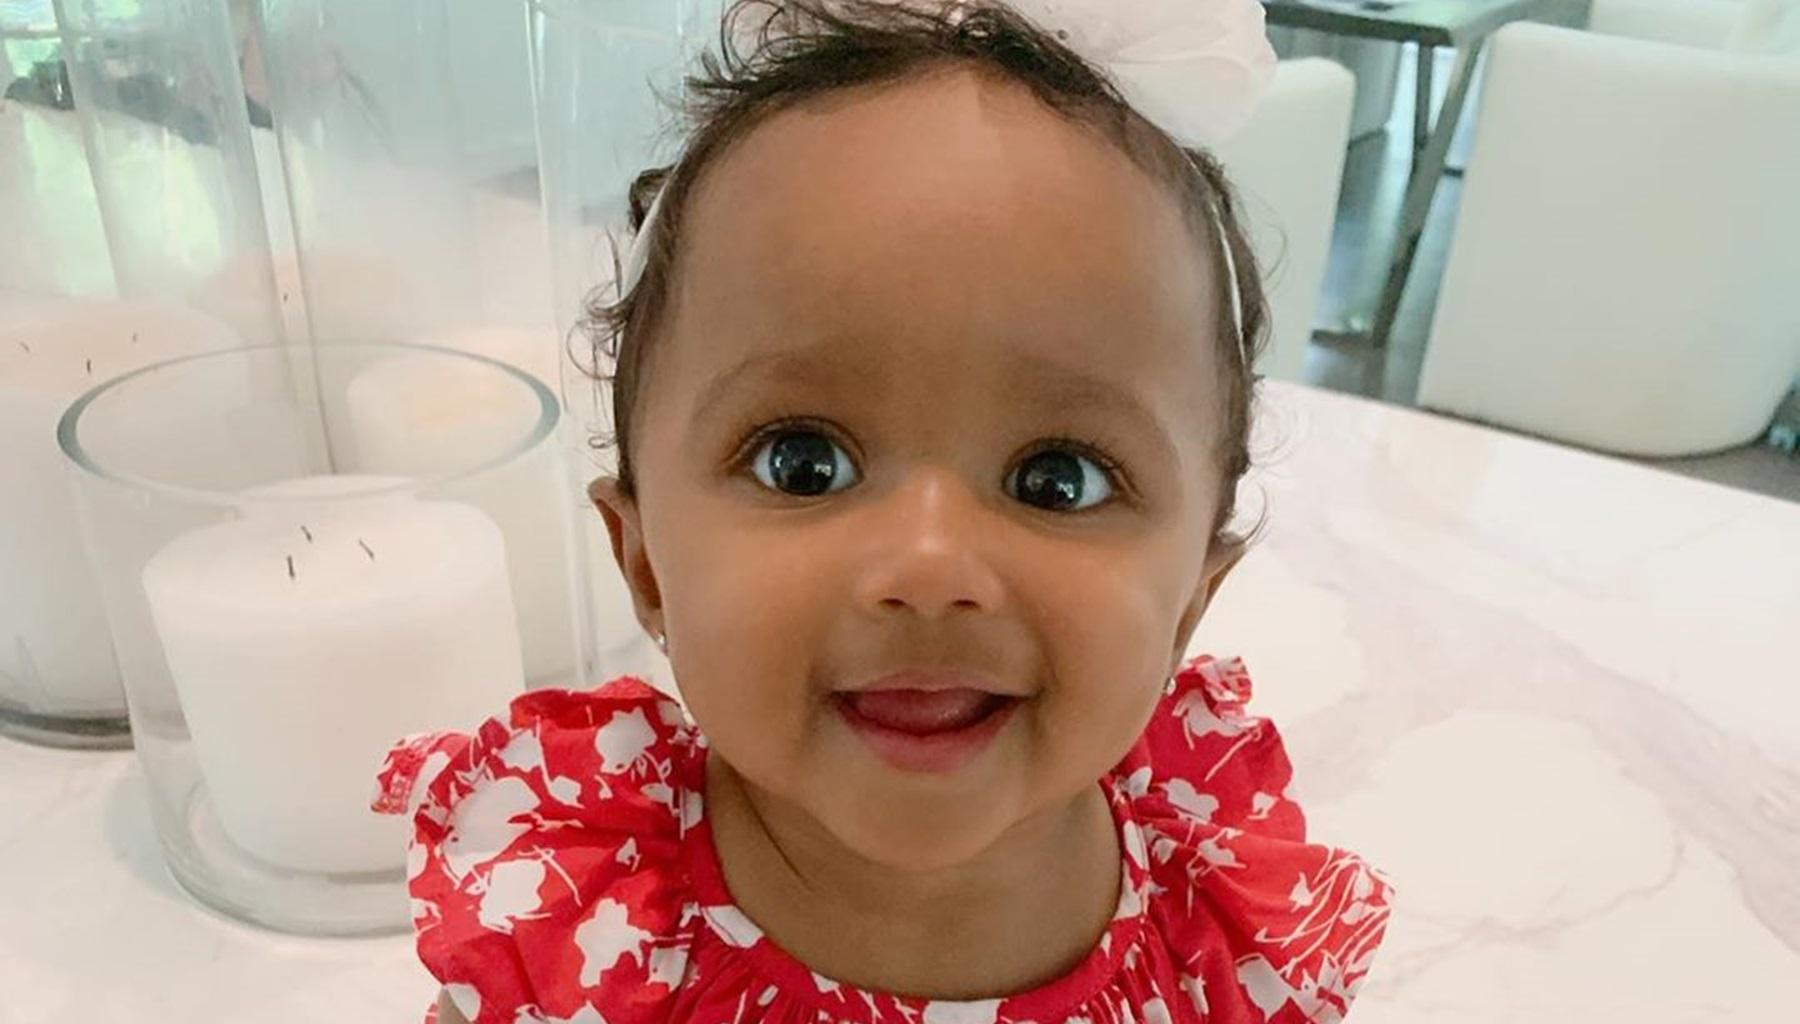 Kenya Moore Is Getting Some Competition From Daughter Brooklyn Daly Who Debuted Adorable Hairstyle In New Photo